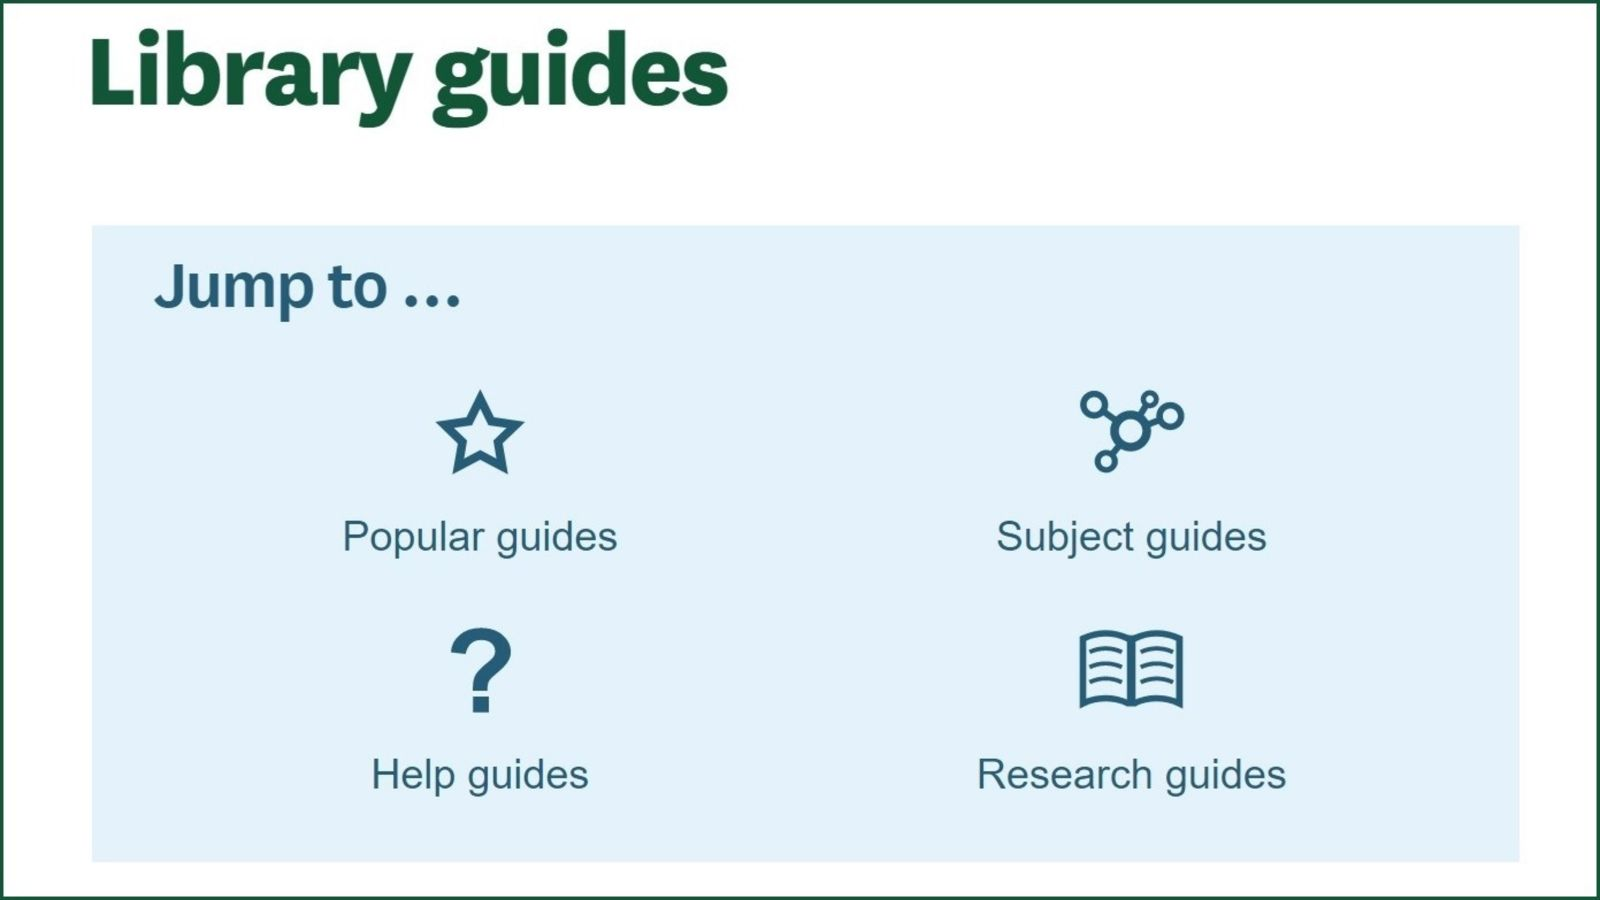 Screenshot showing the four types of library guides: Popular, Subject, Help, and Research.